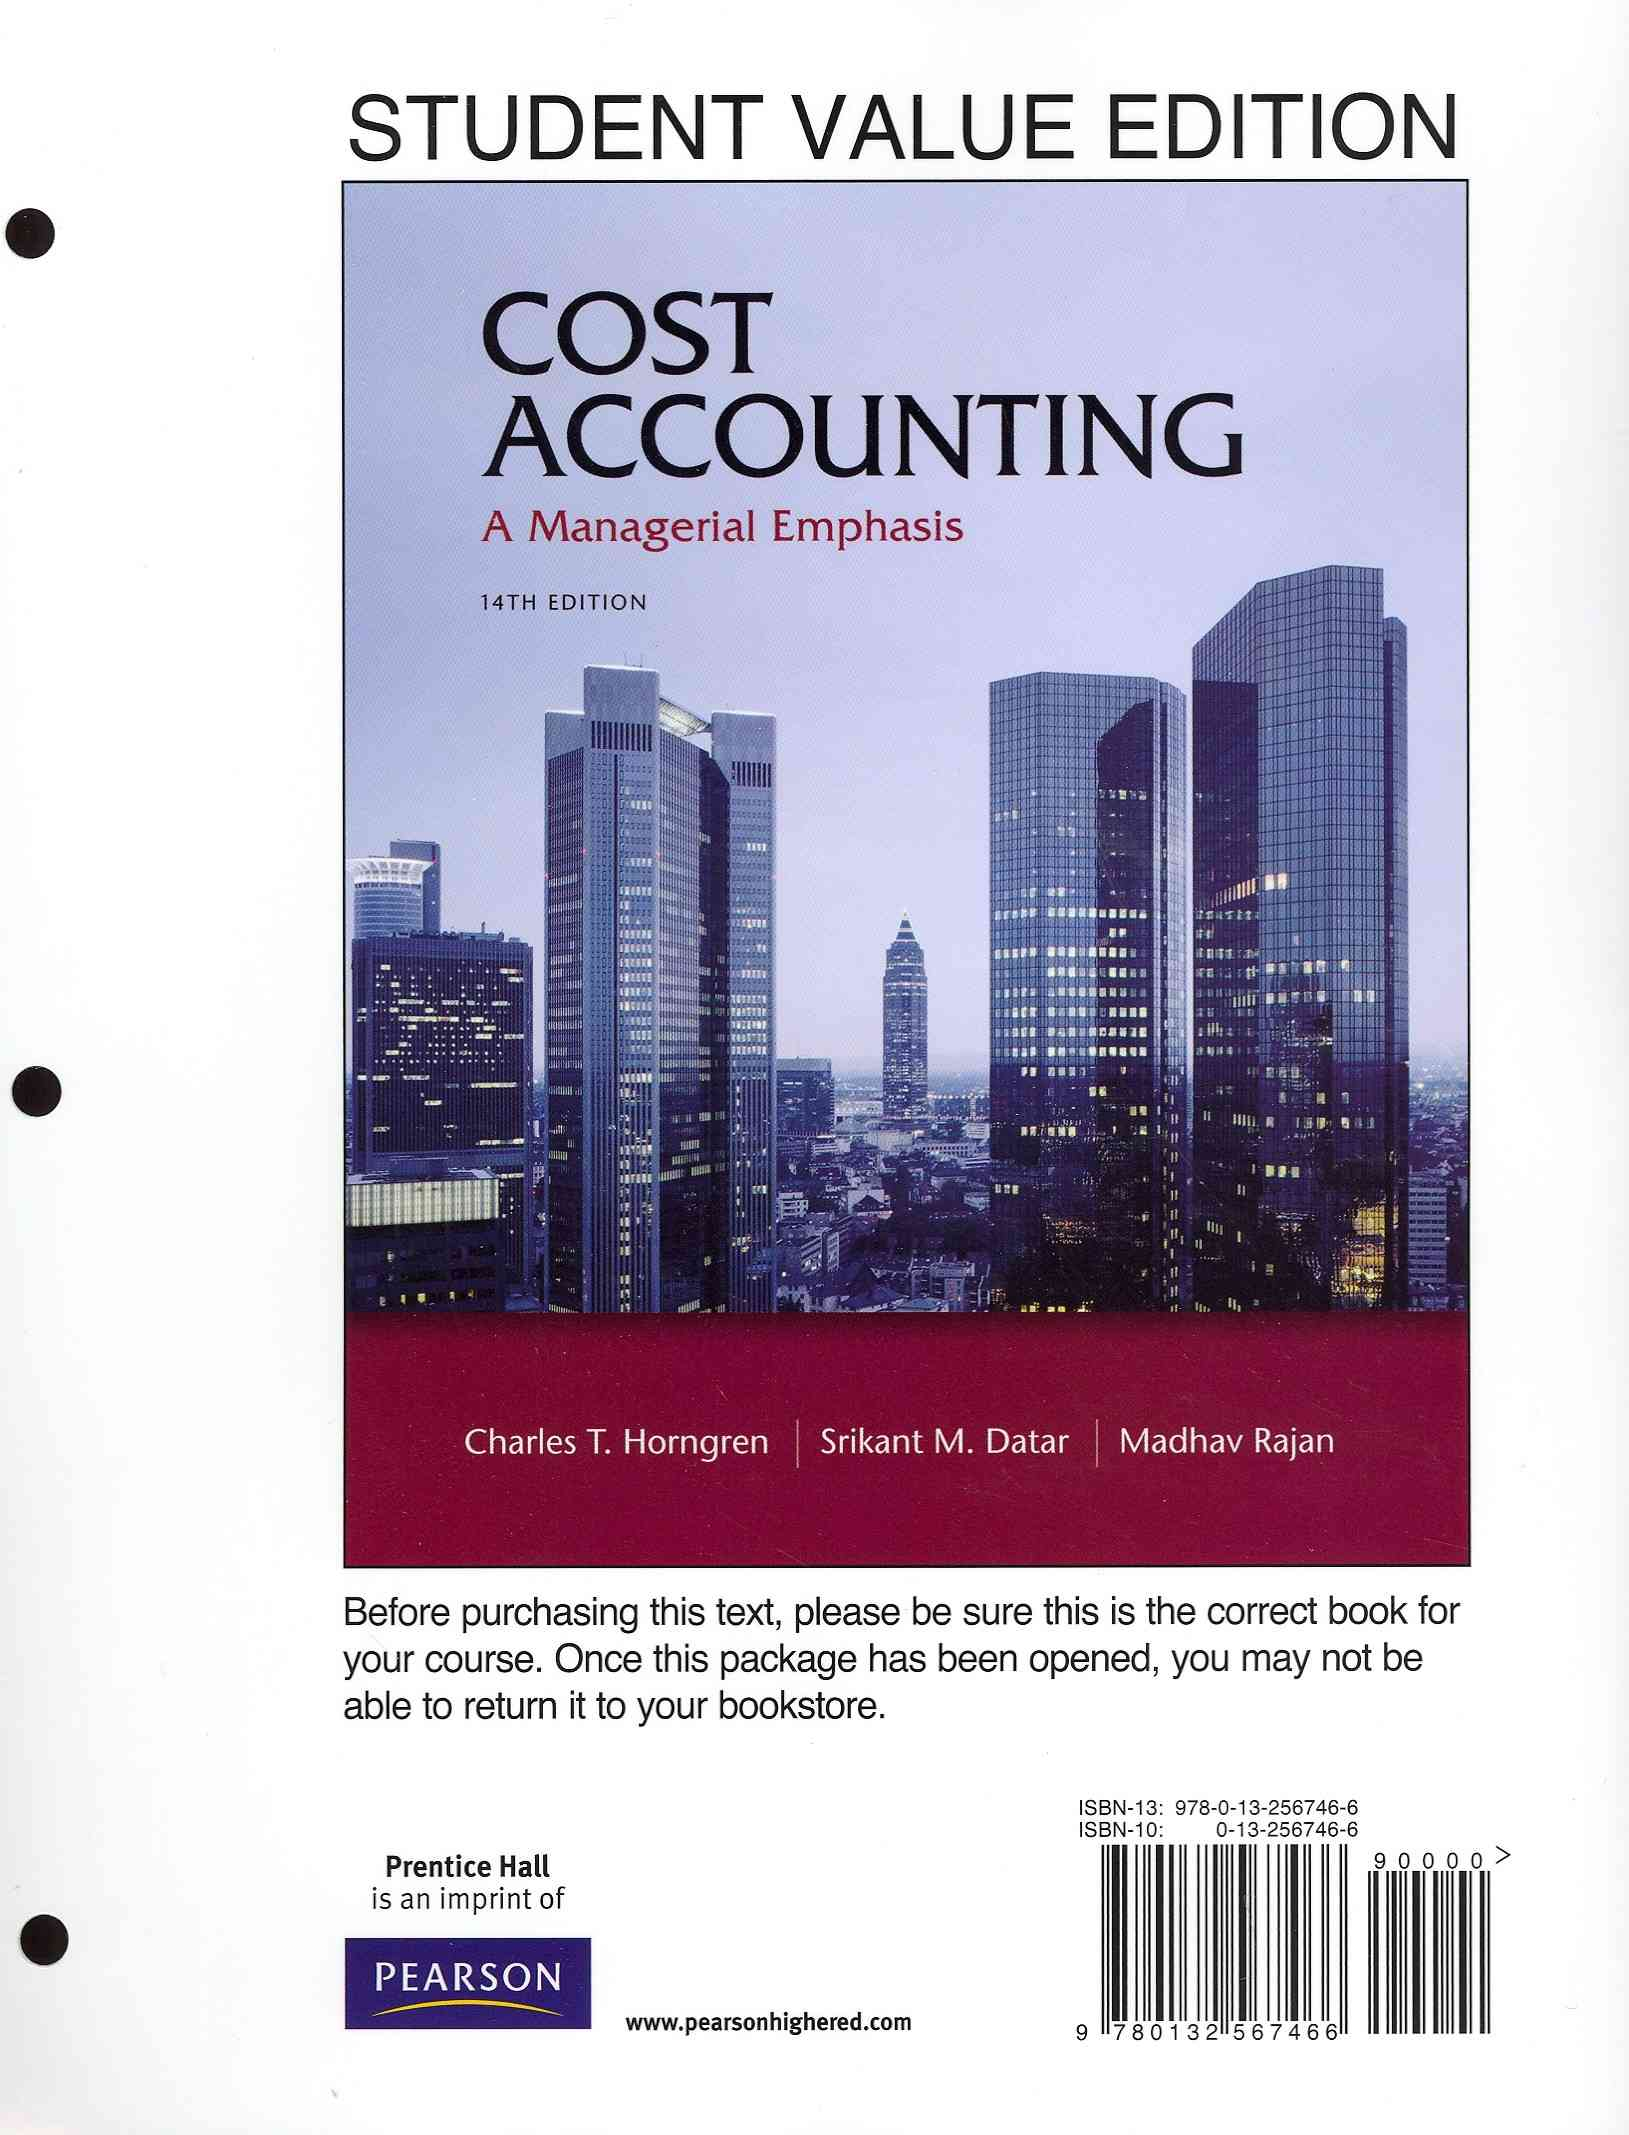 Cost Accounting: A Managerial Emphasis (Other book format)